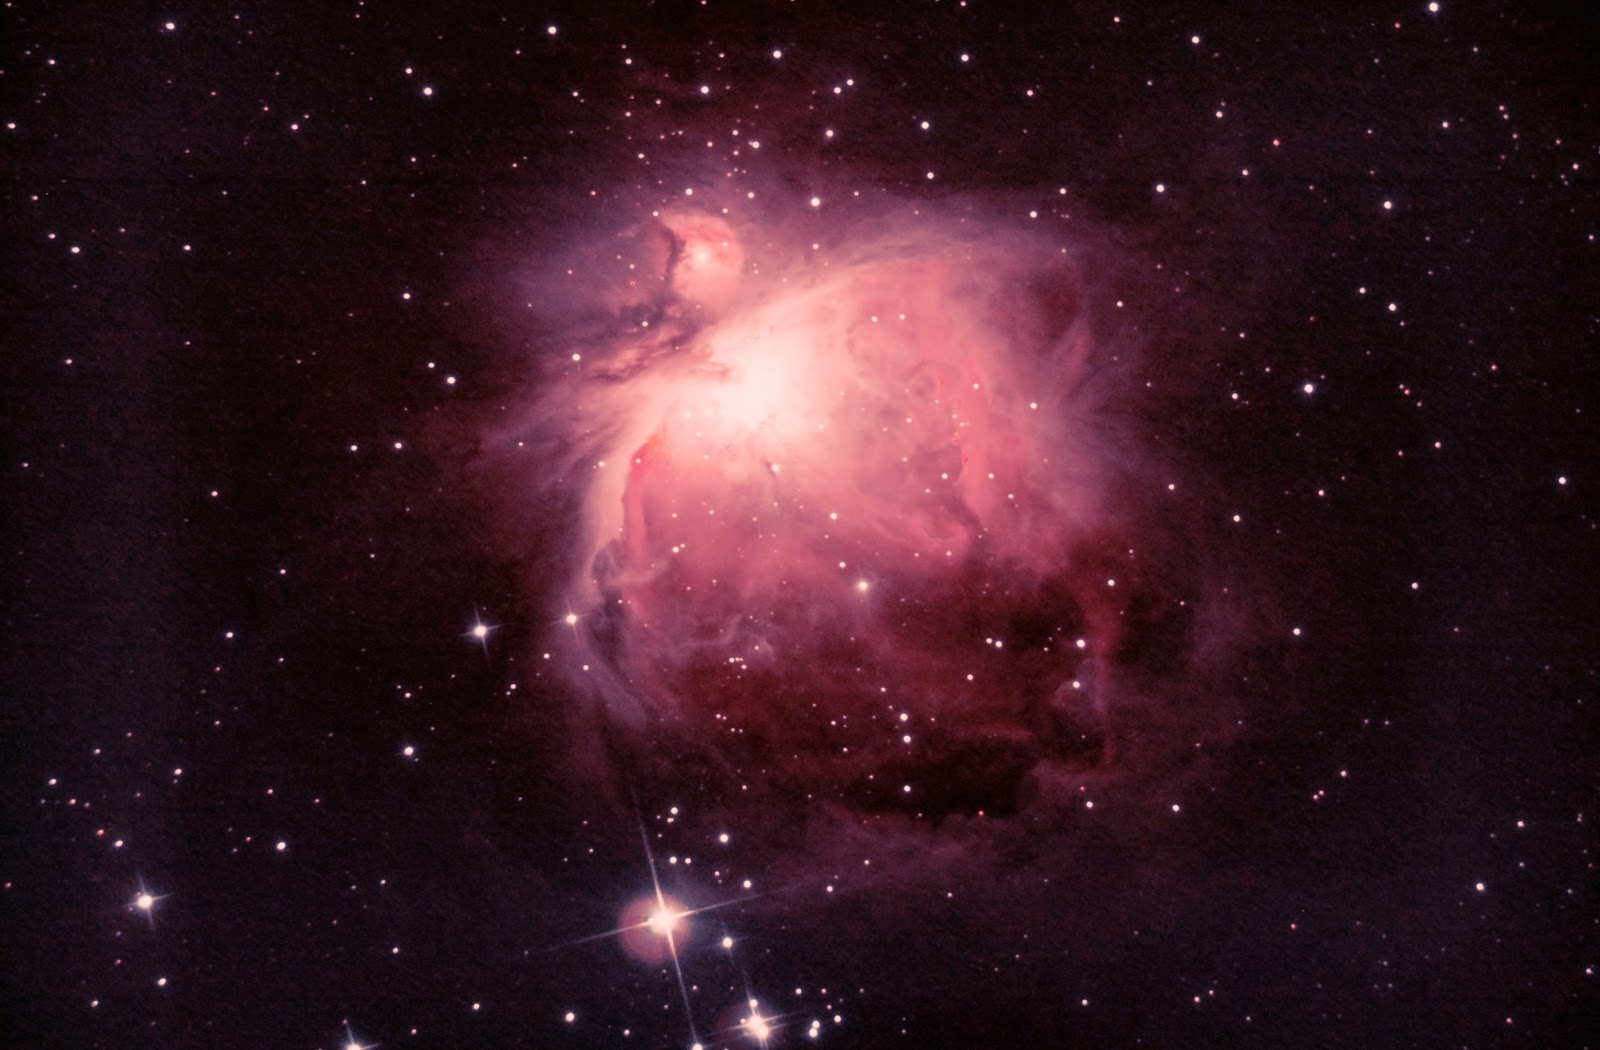 hd orion nebula - photo #1